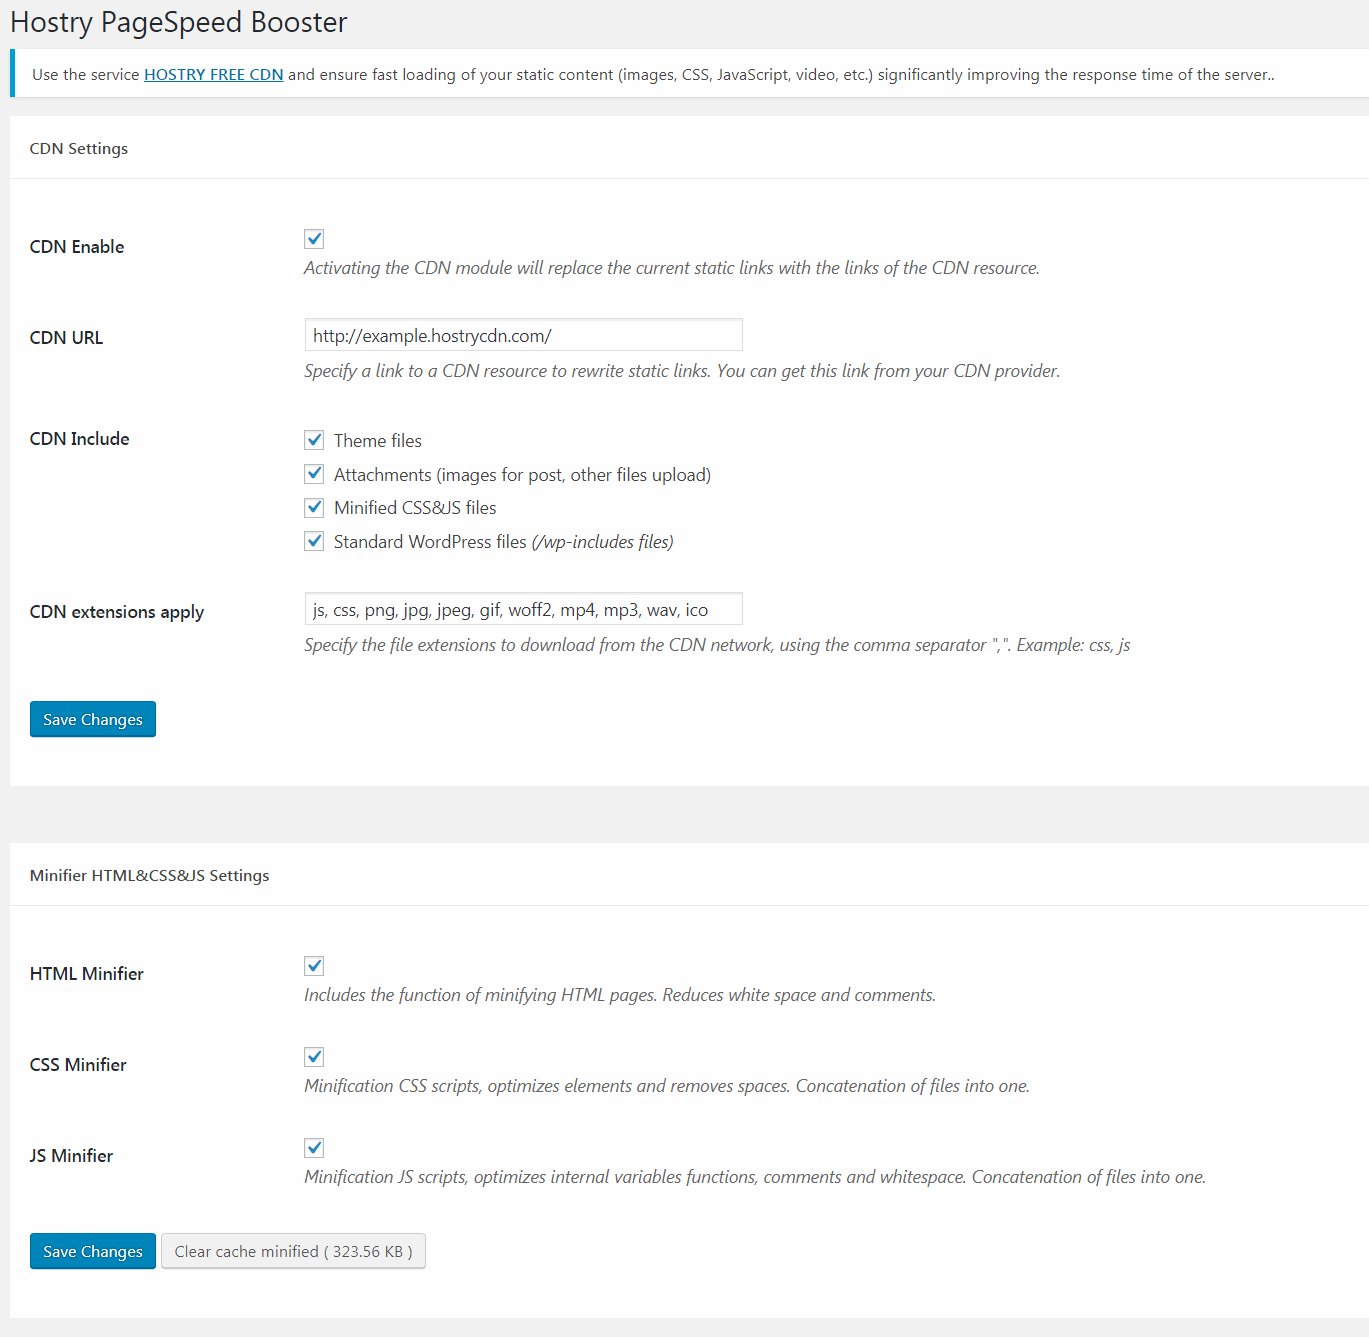 Hostry PageSpeed Booster - Settings page